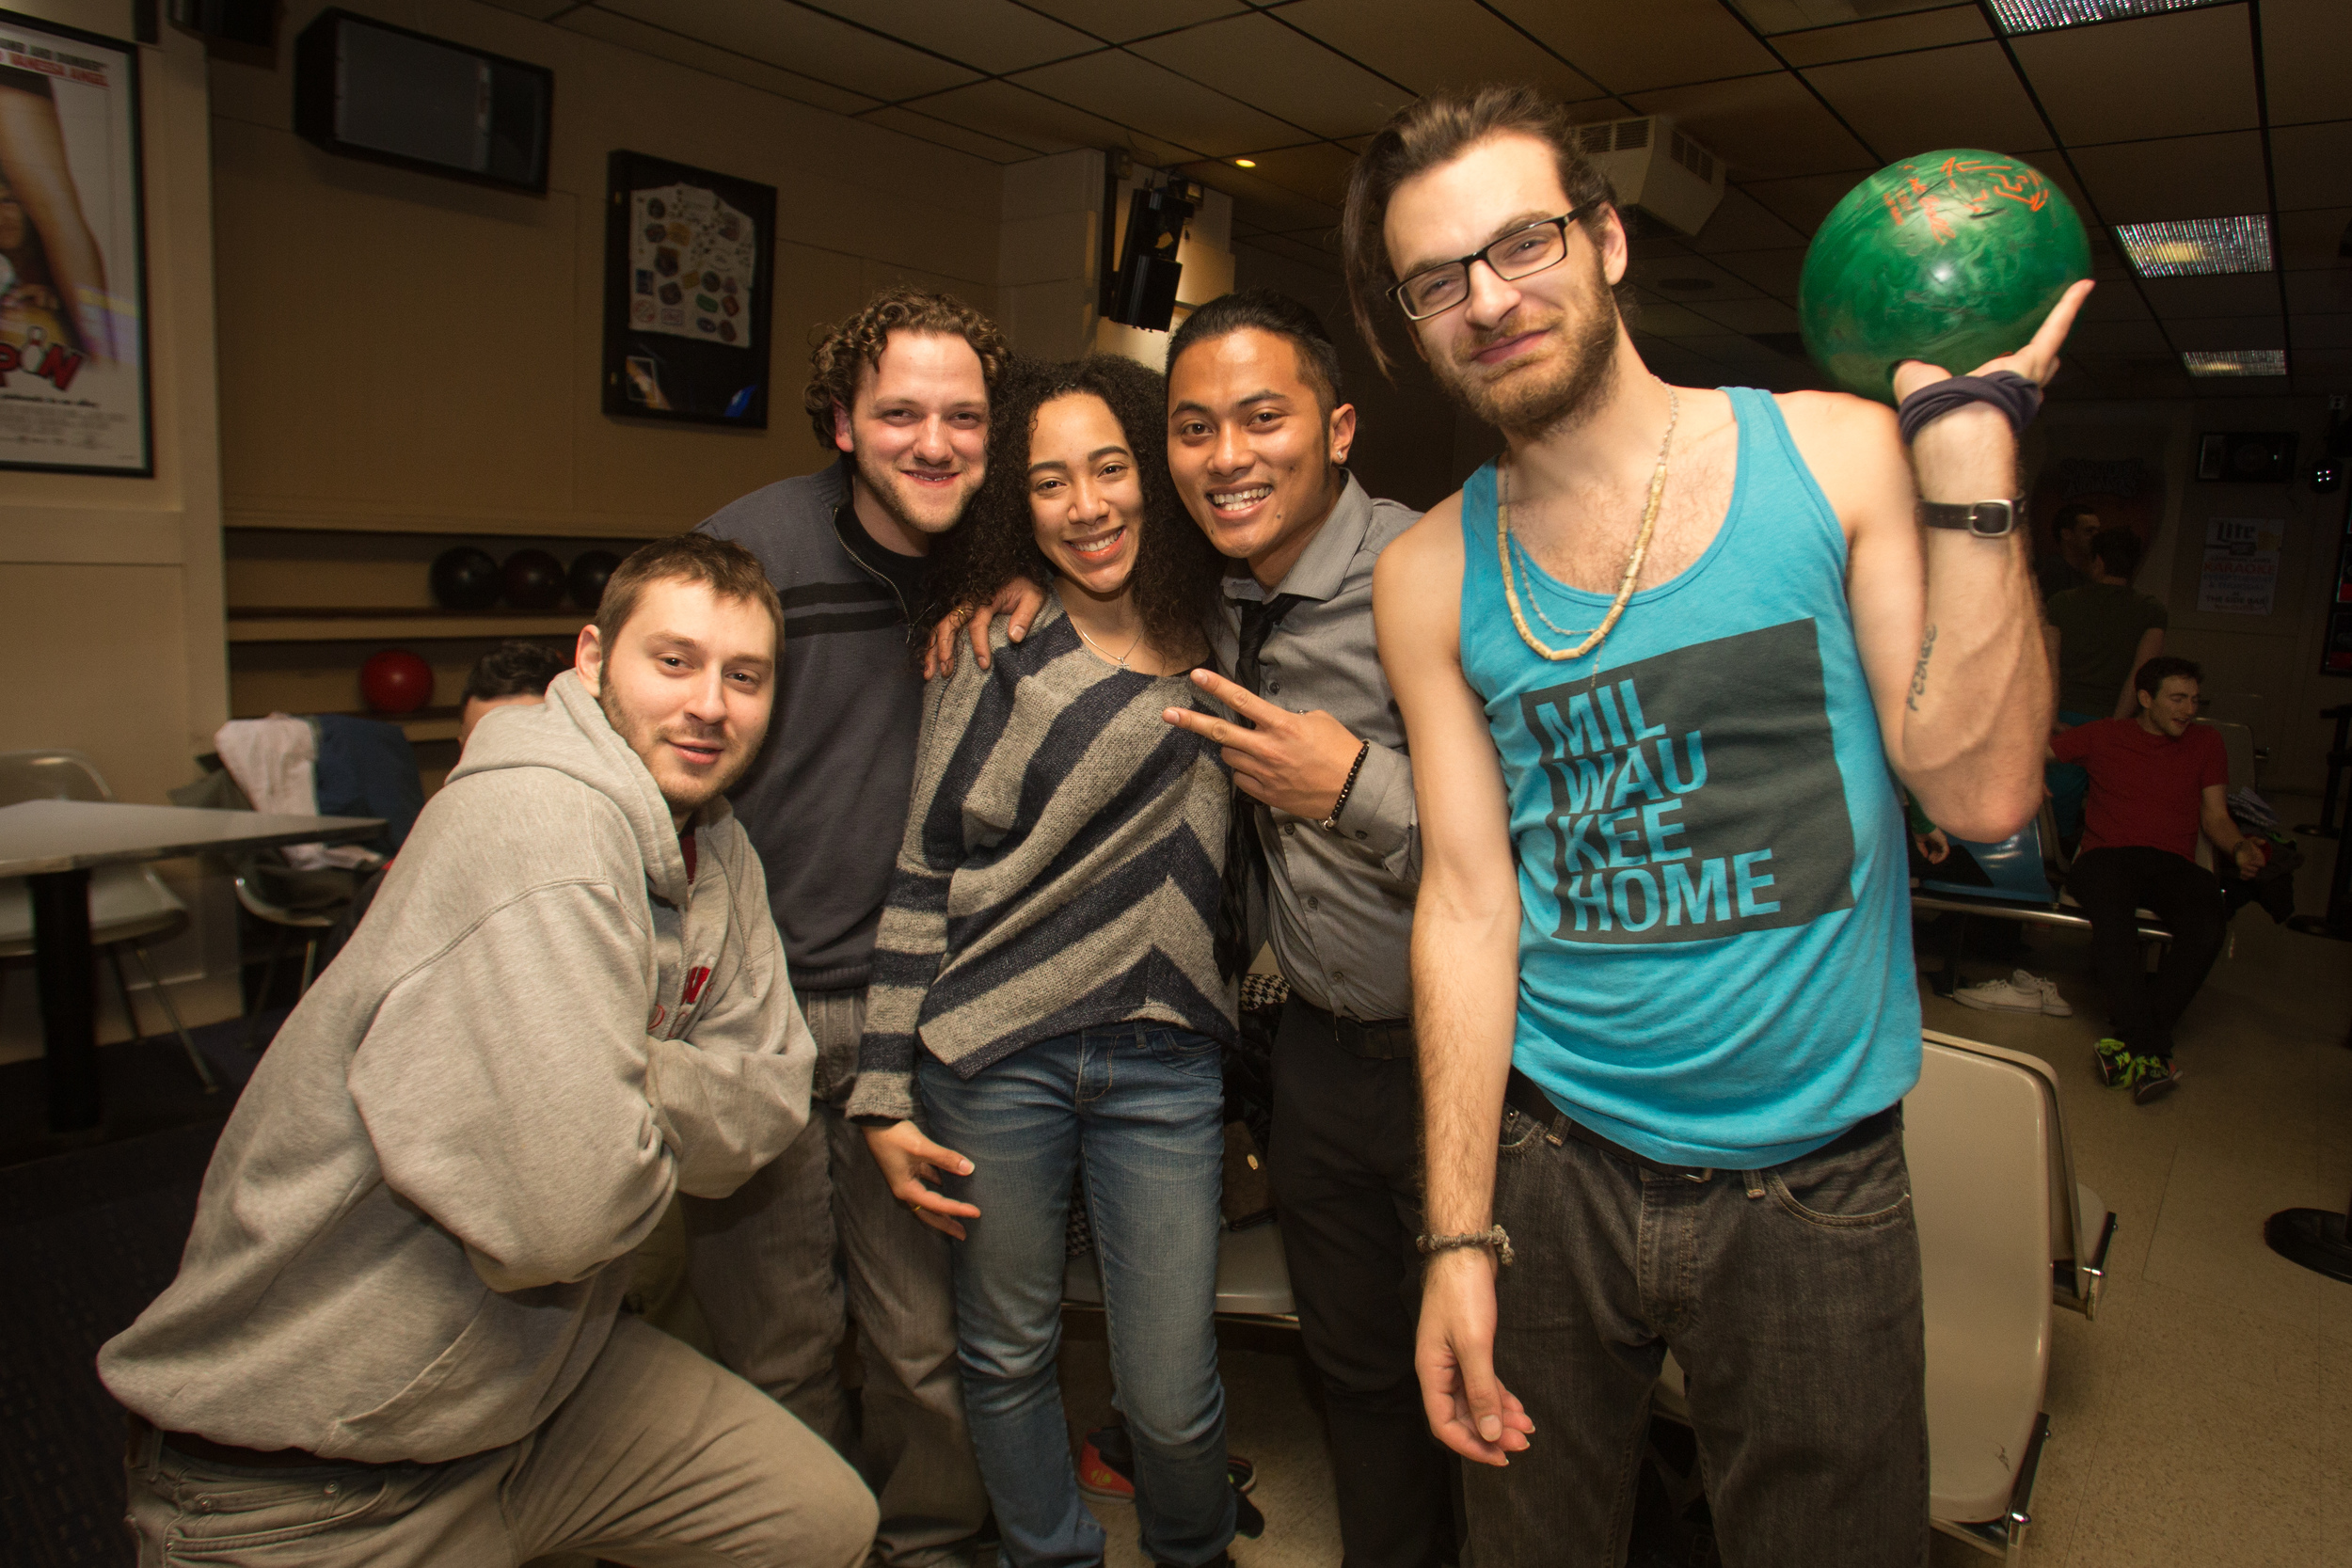 Weekend bowling at Landmark Lanes